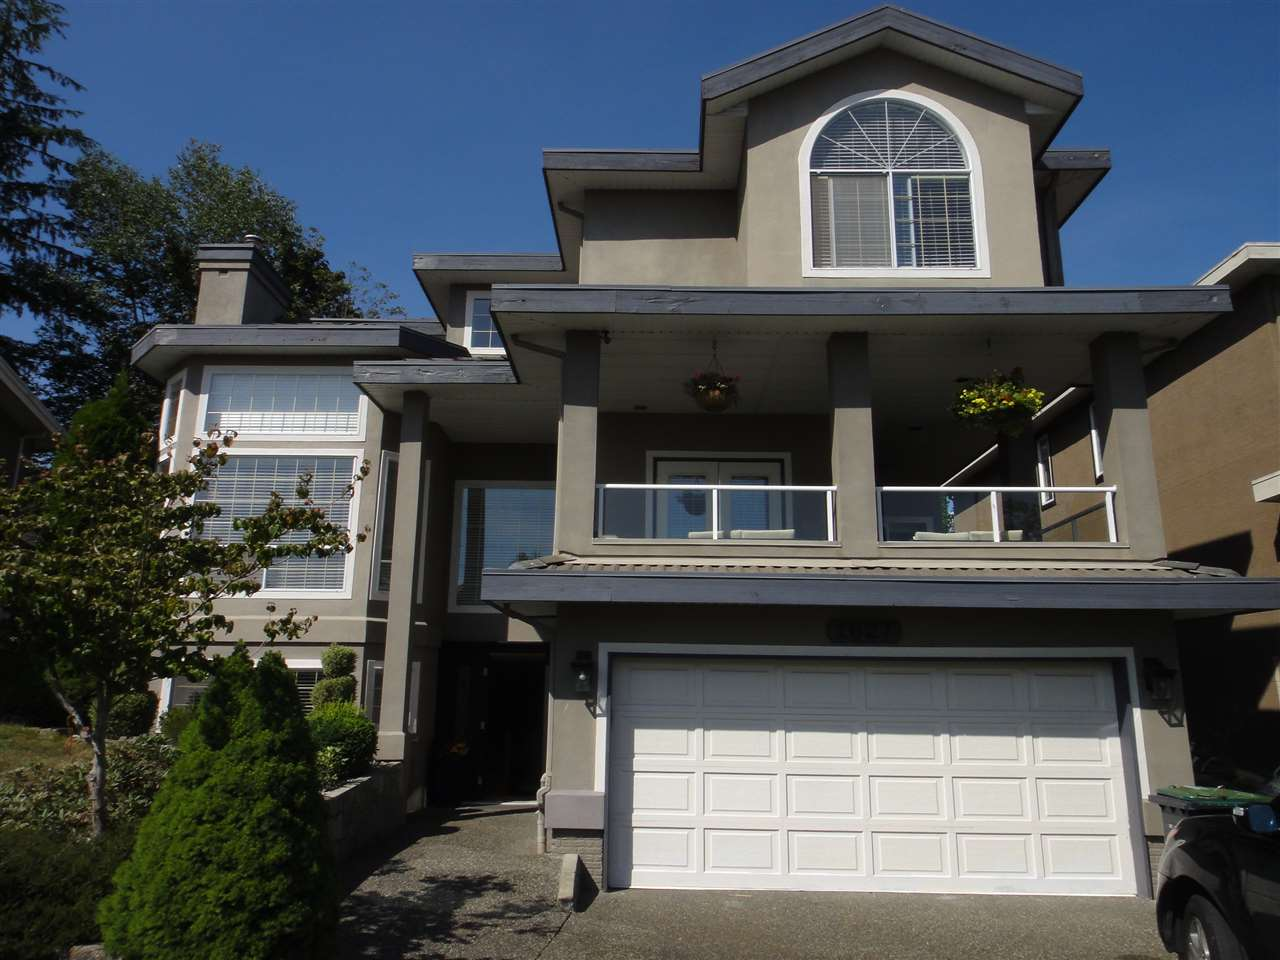 Main Photo: 1627 SUNDEW Place in Coquitlam: Westwood Plateau House for sale : MLS® # R2196837